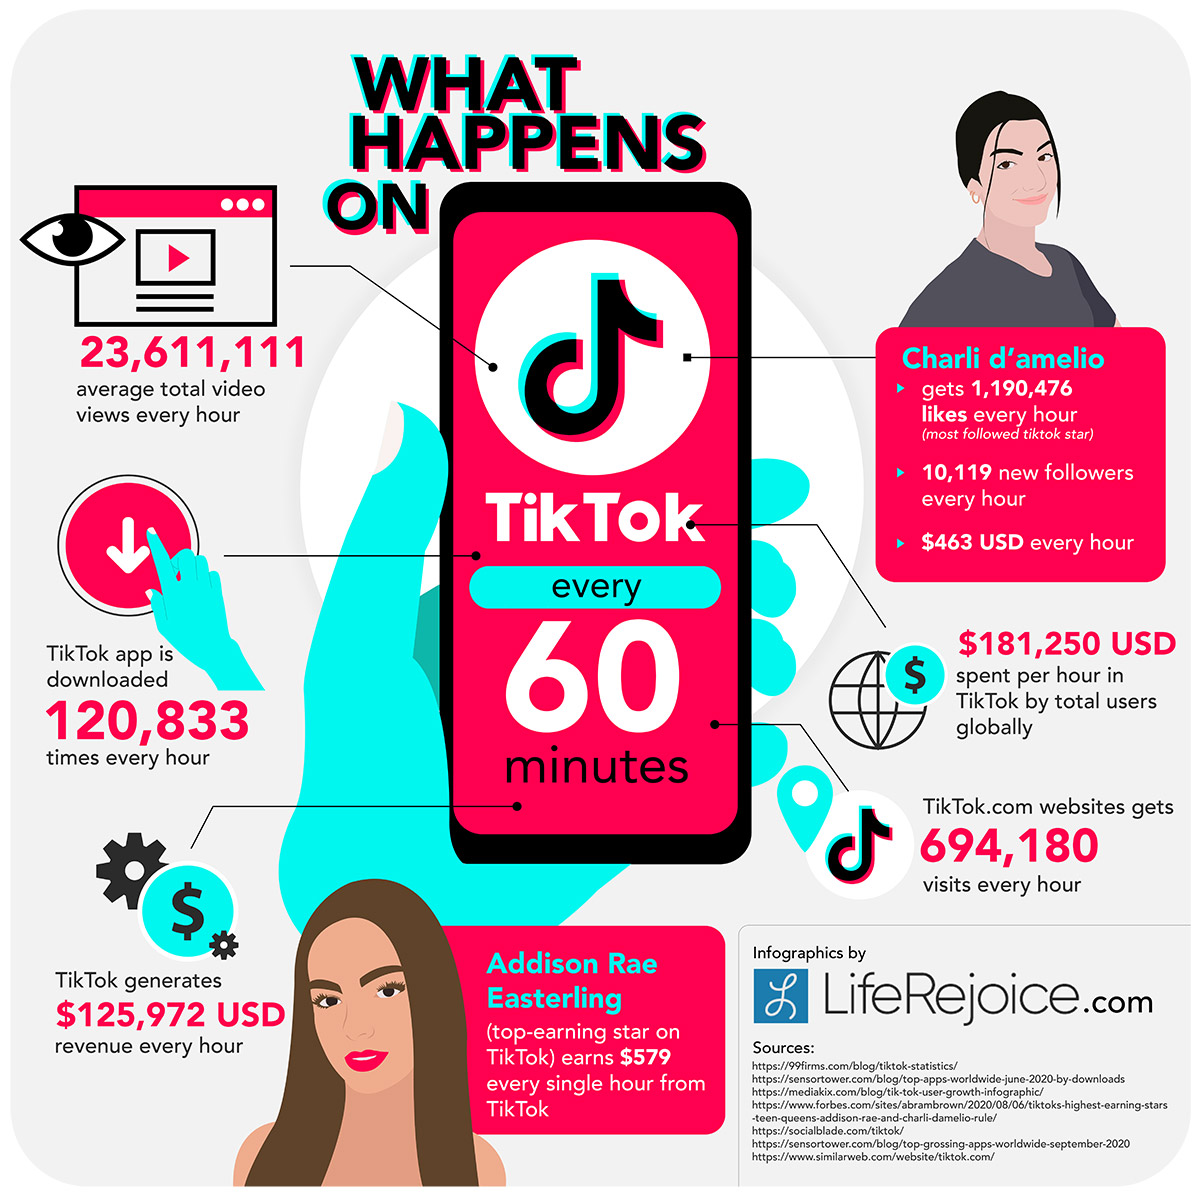 What happens on TikTok every single 60 minutes infographics